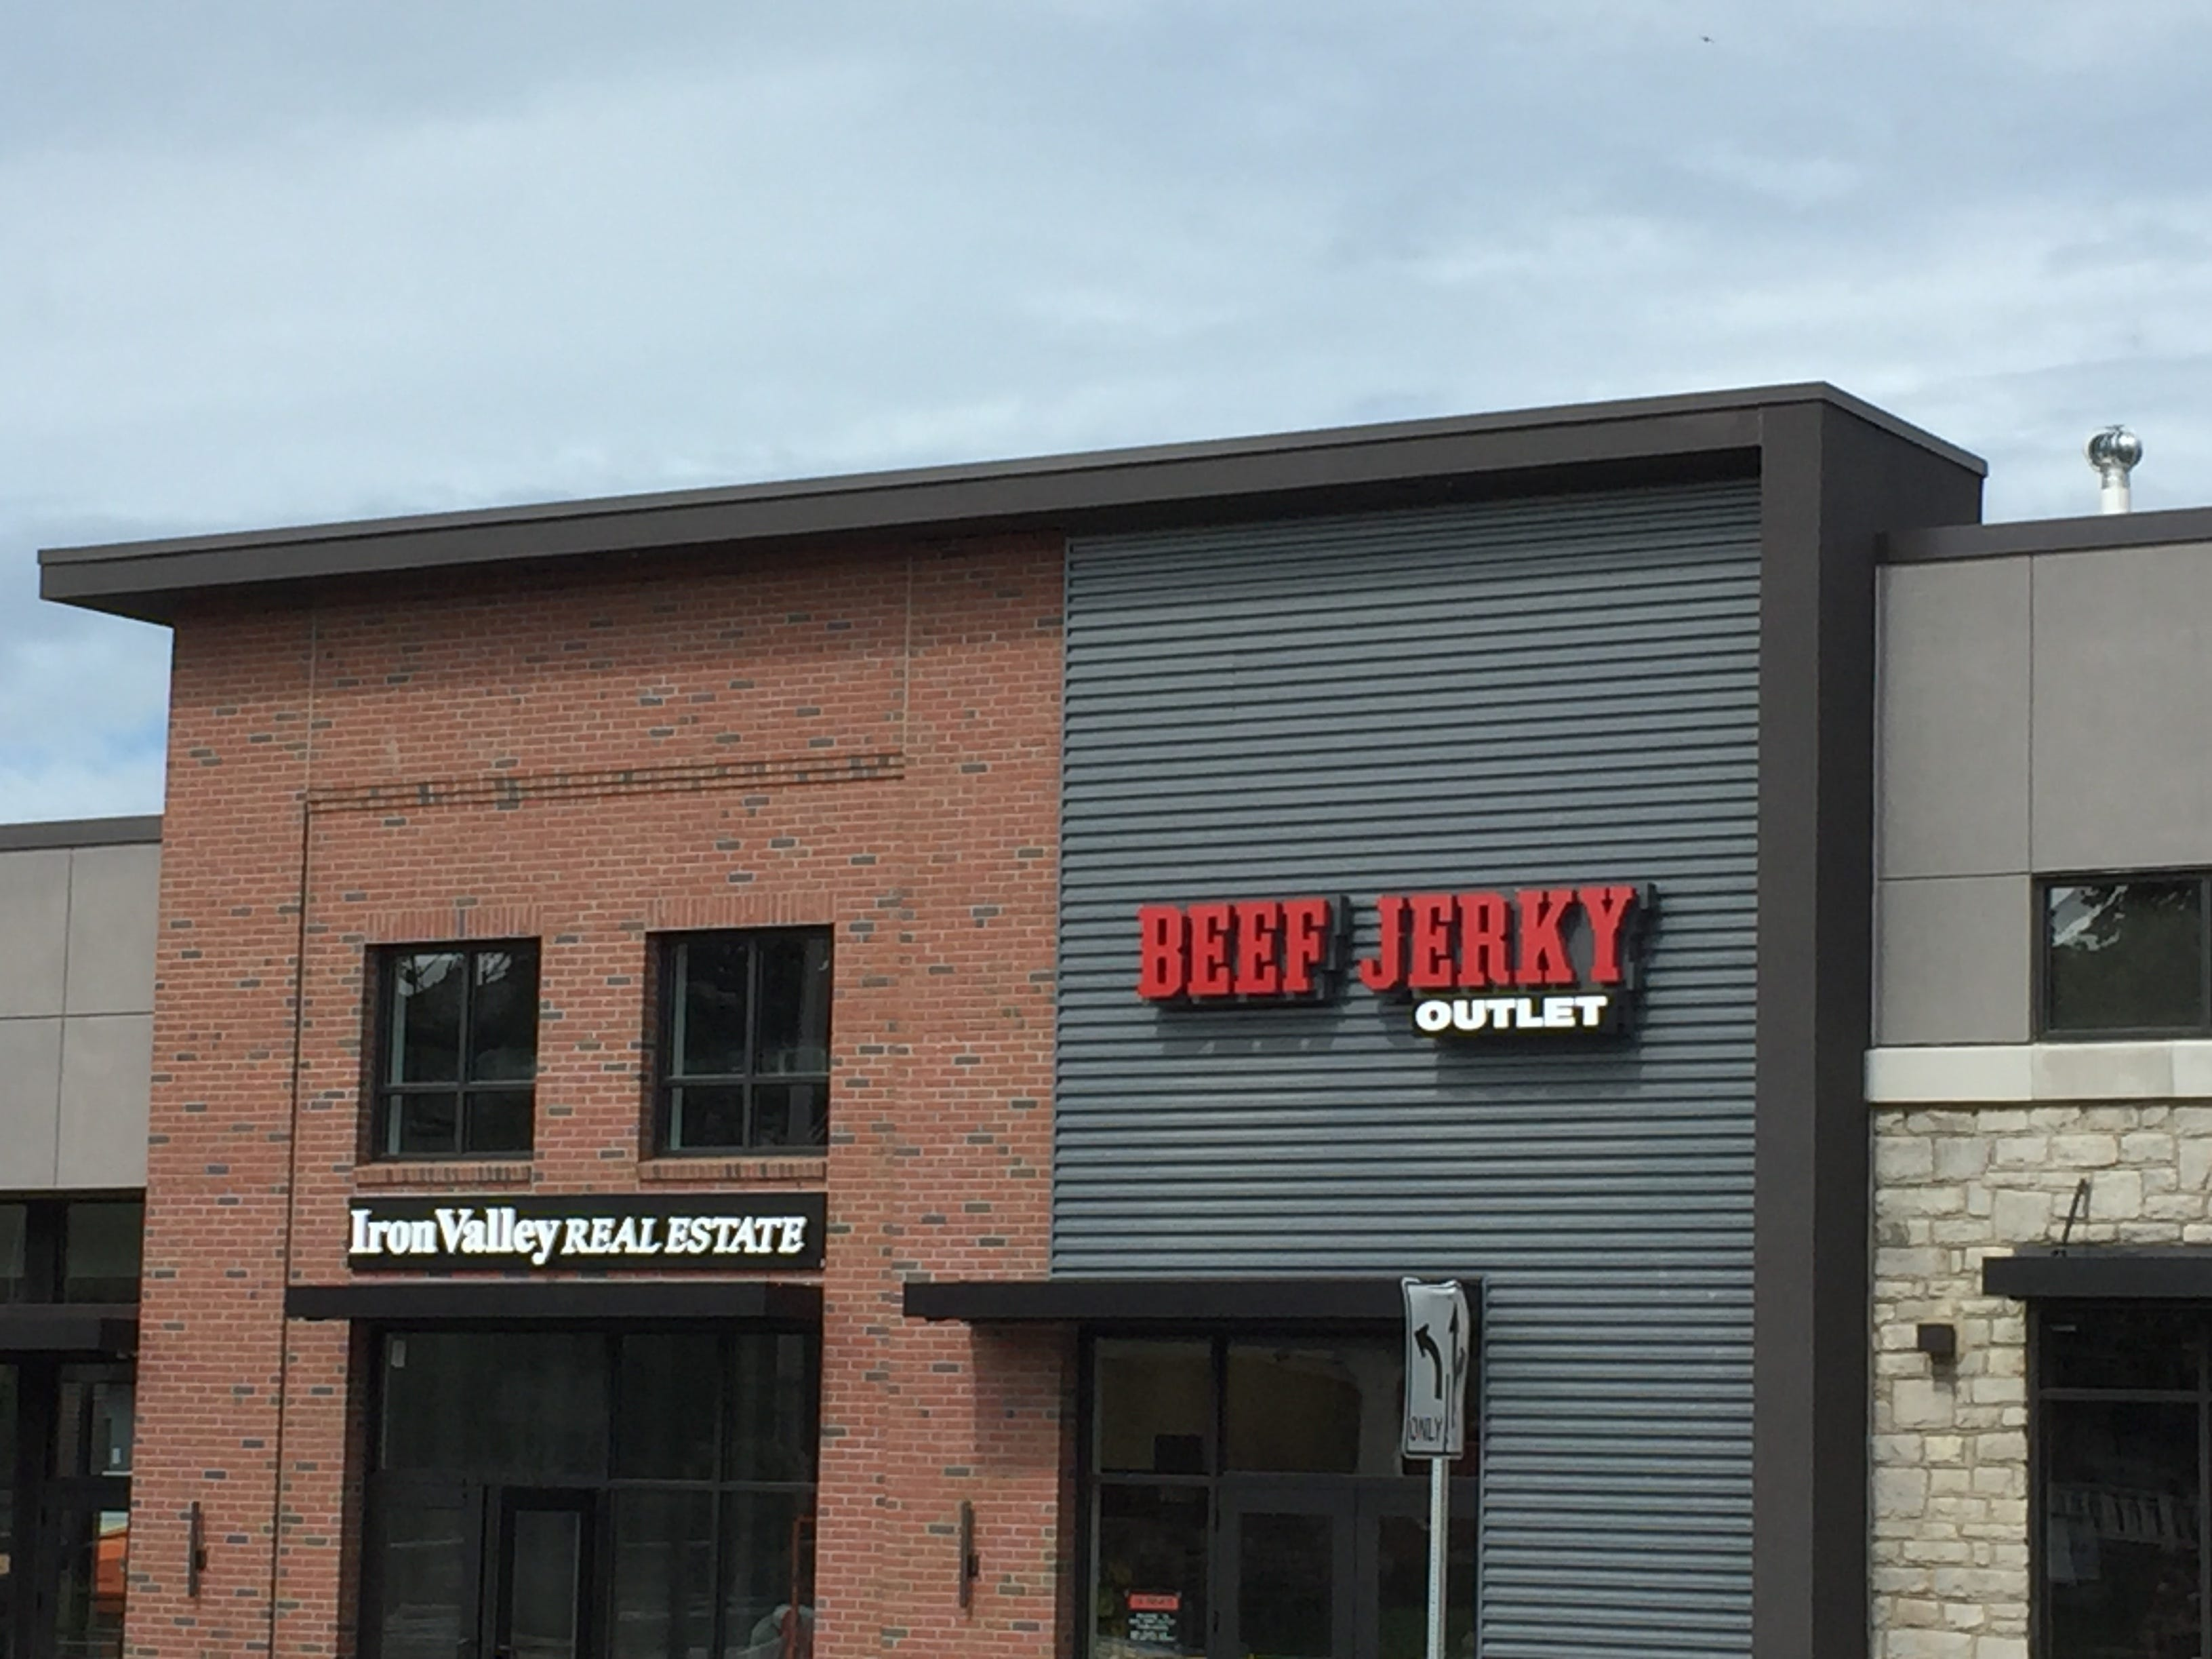 Iron Valley Real Estate and Beef Jerky Outlet are both nearing completion.